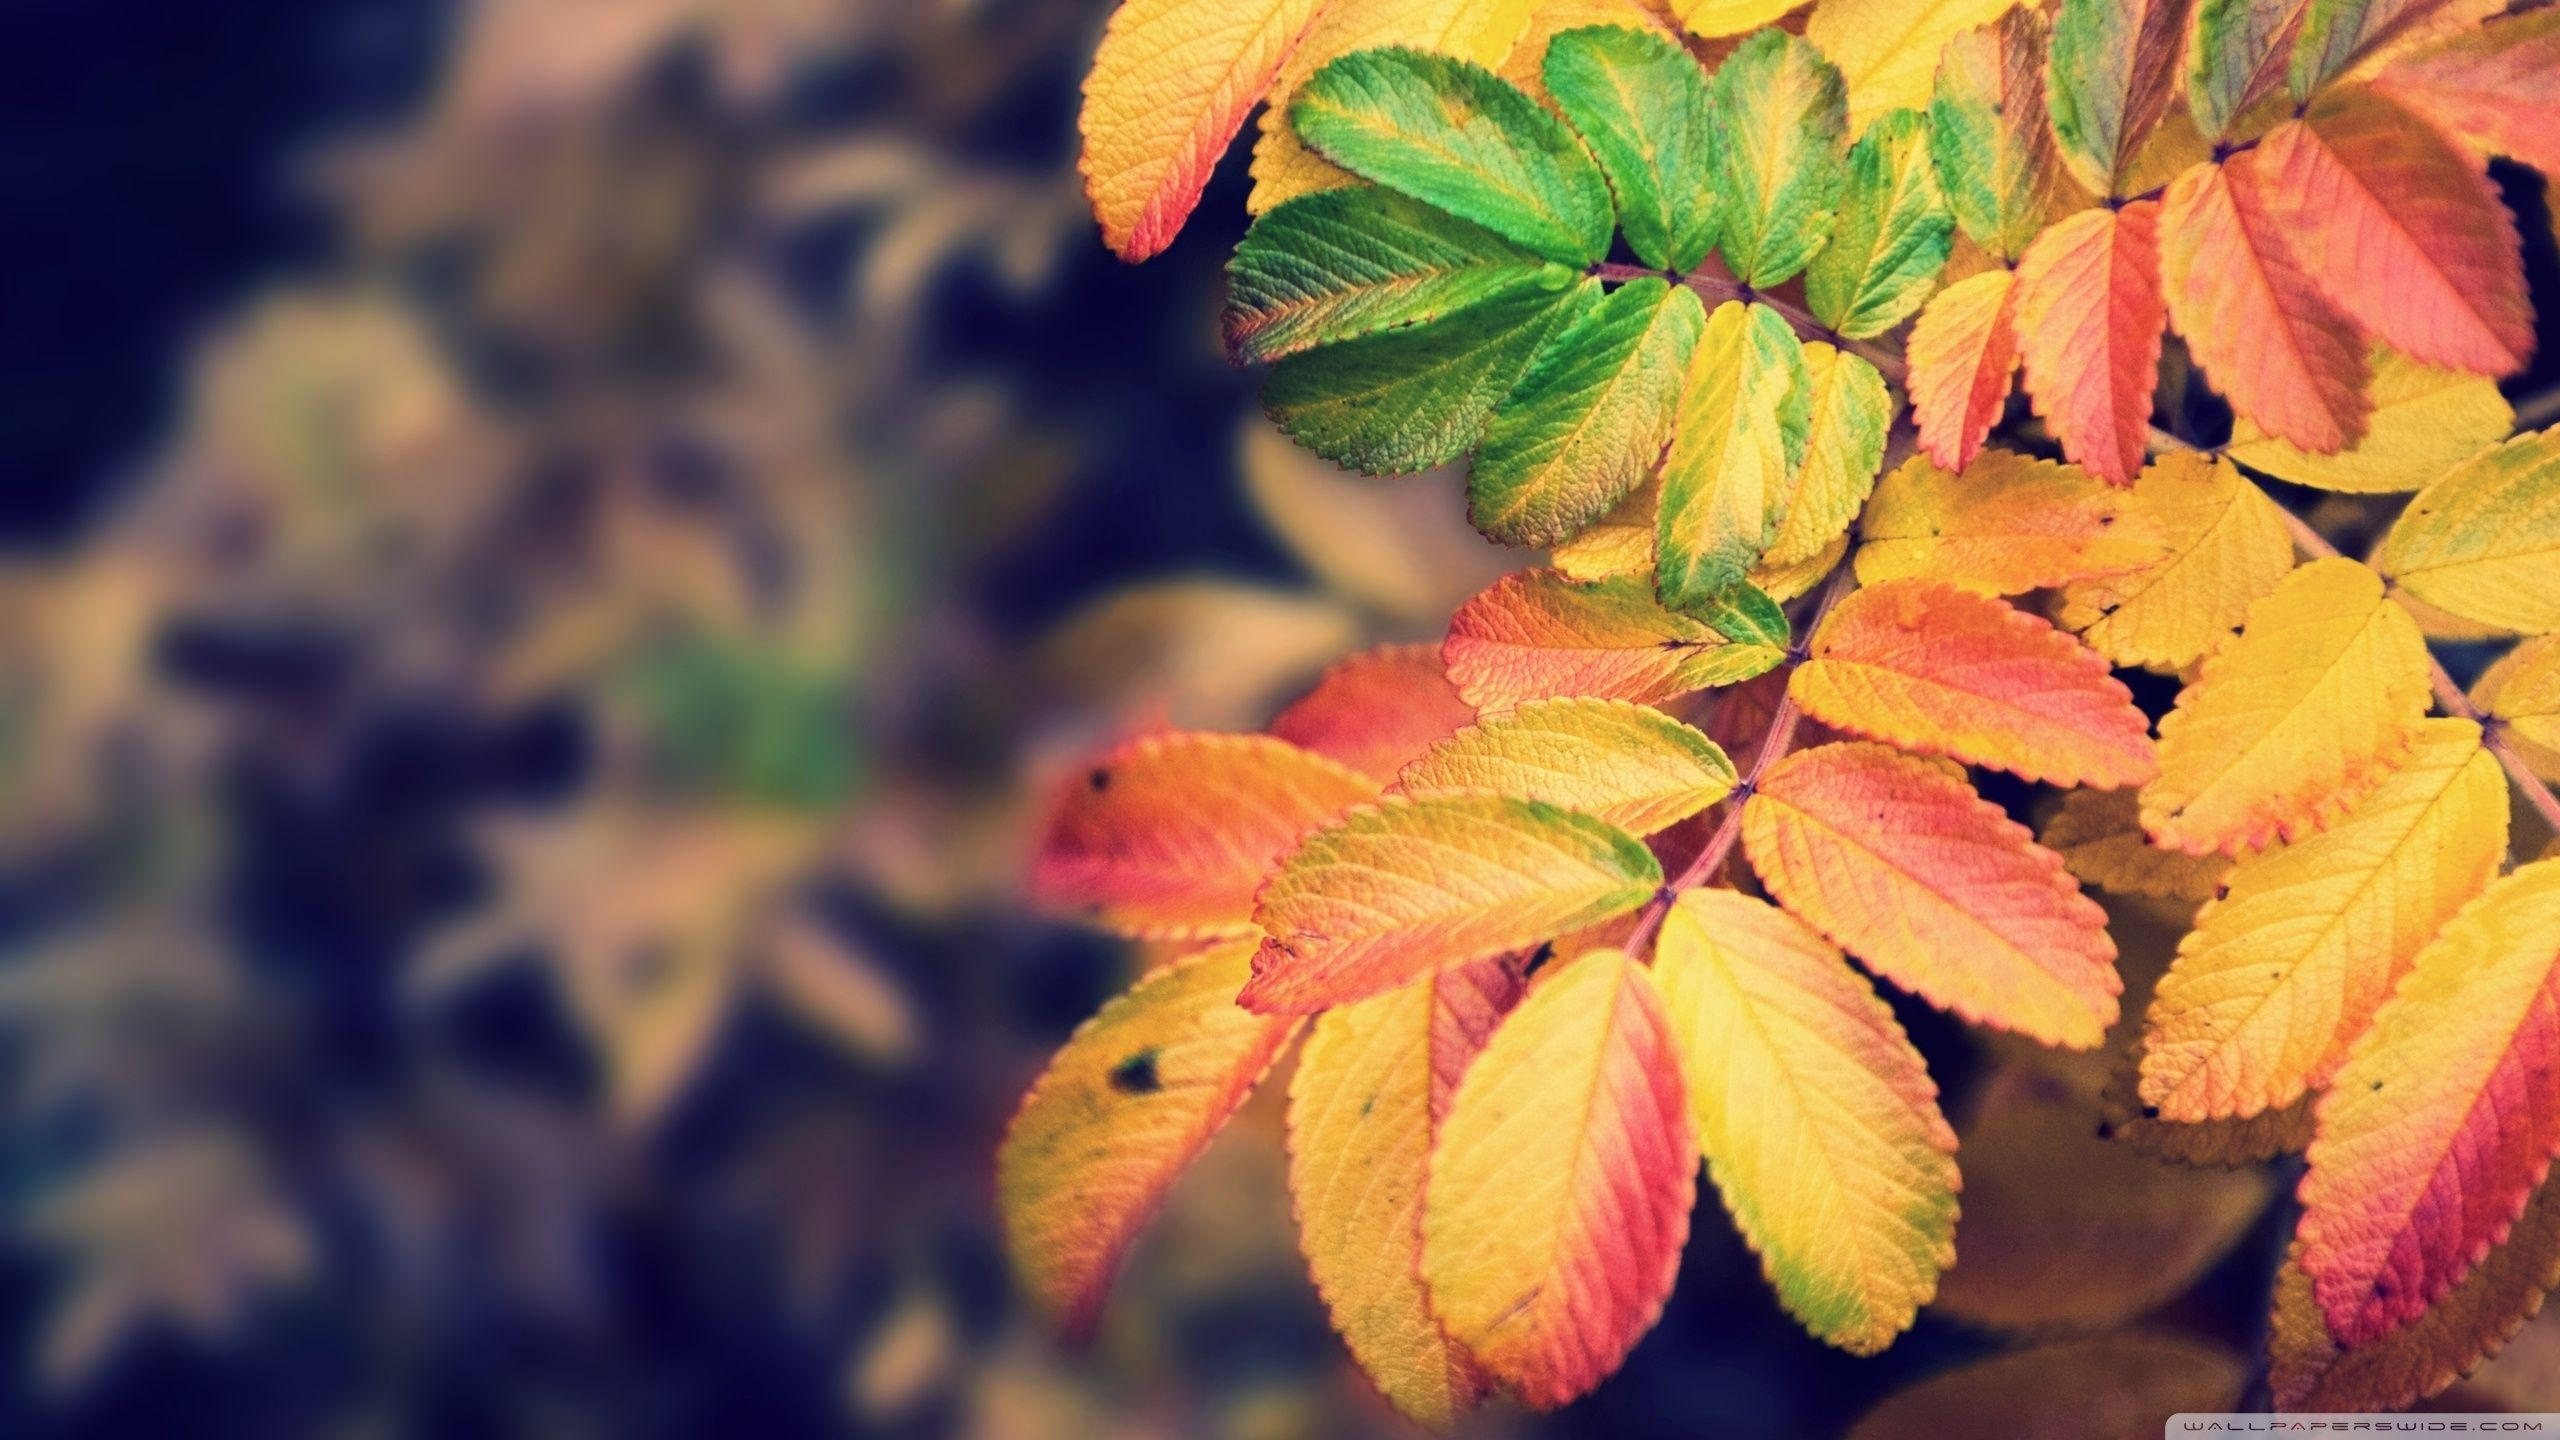 Autumn Leaves ❤ 4K HD Desktop Wallpaper for 4K Ultra HD TV • Tablet ...